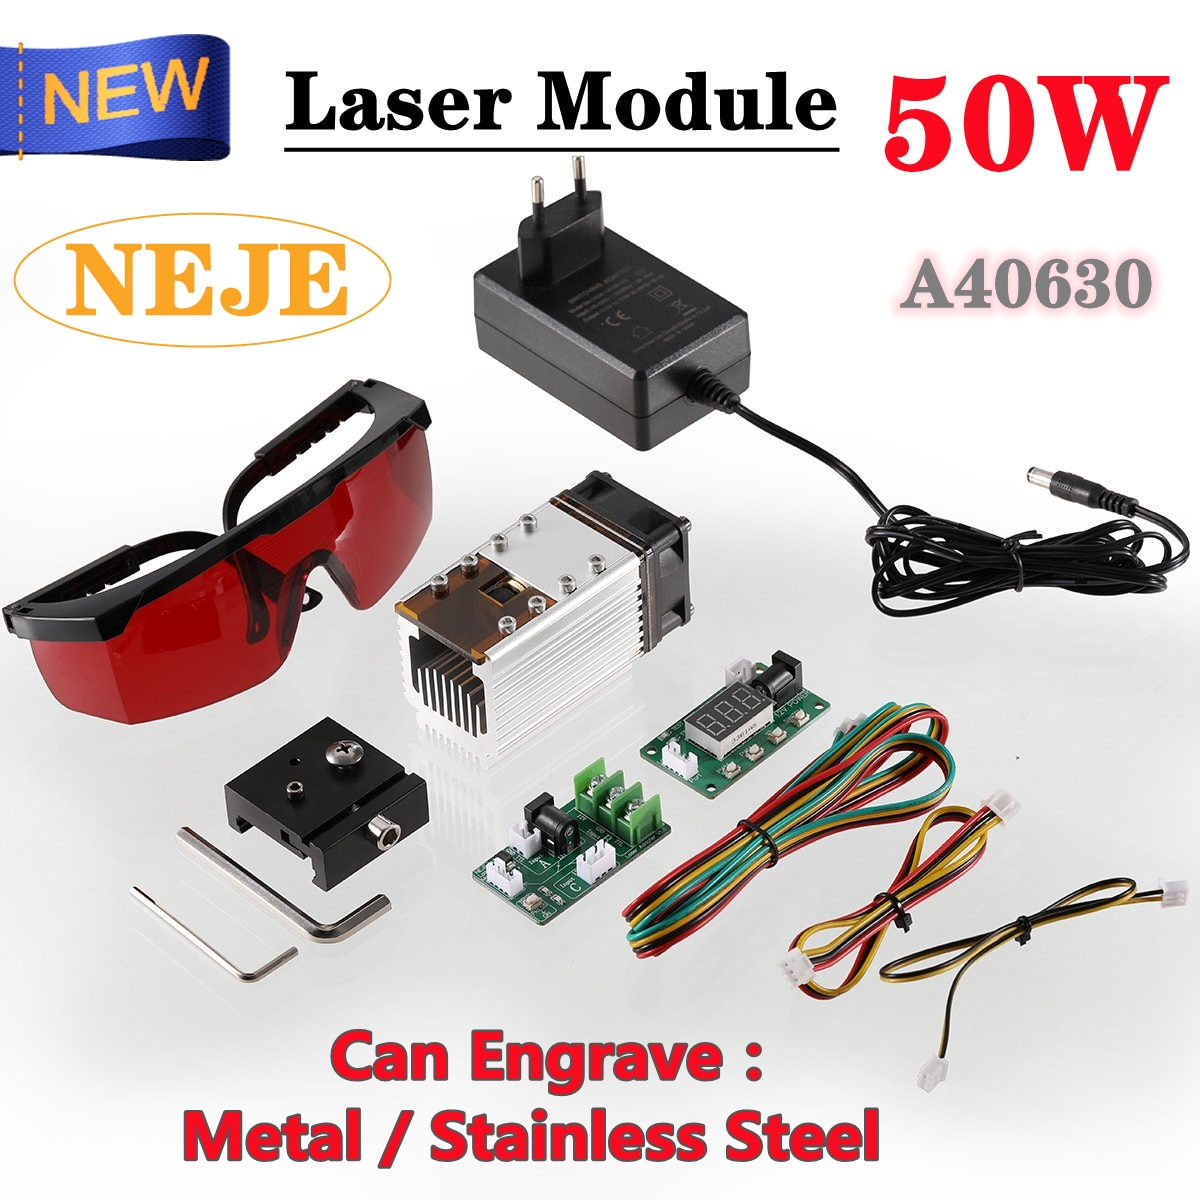 NEJE New 50W A40630 Laser Module Kits for CNC Laser Engraving Machine Wood Cutting Machine Can Engrave Metal/Stainless Steel